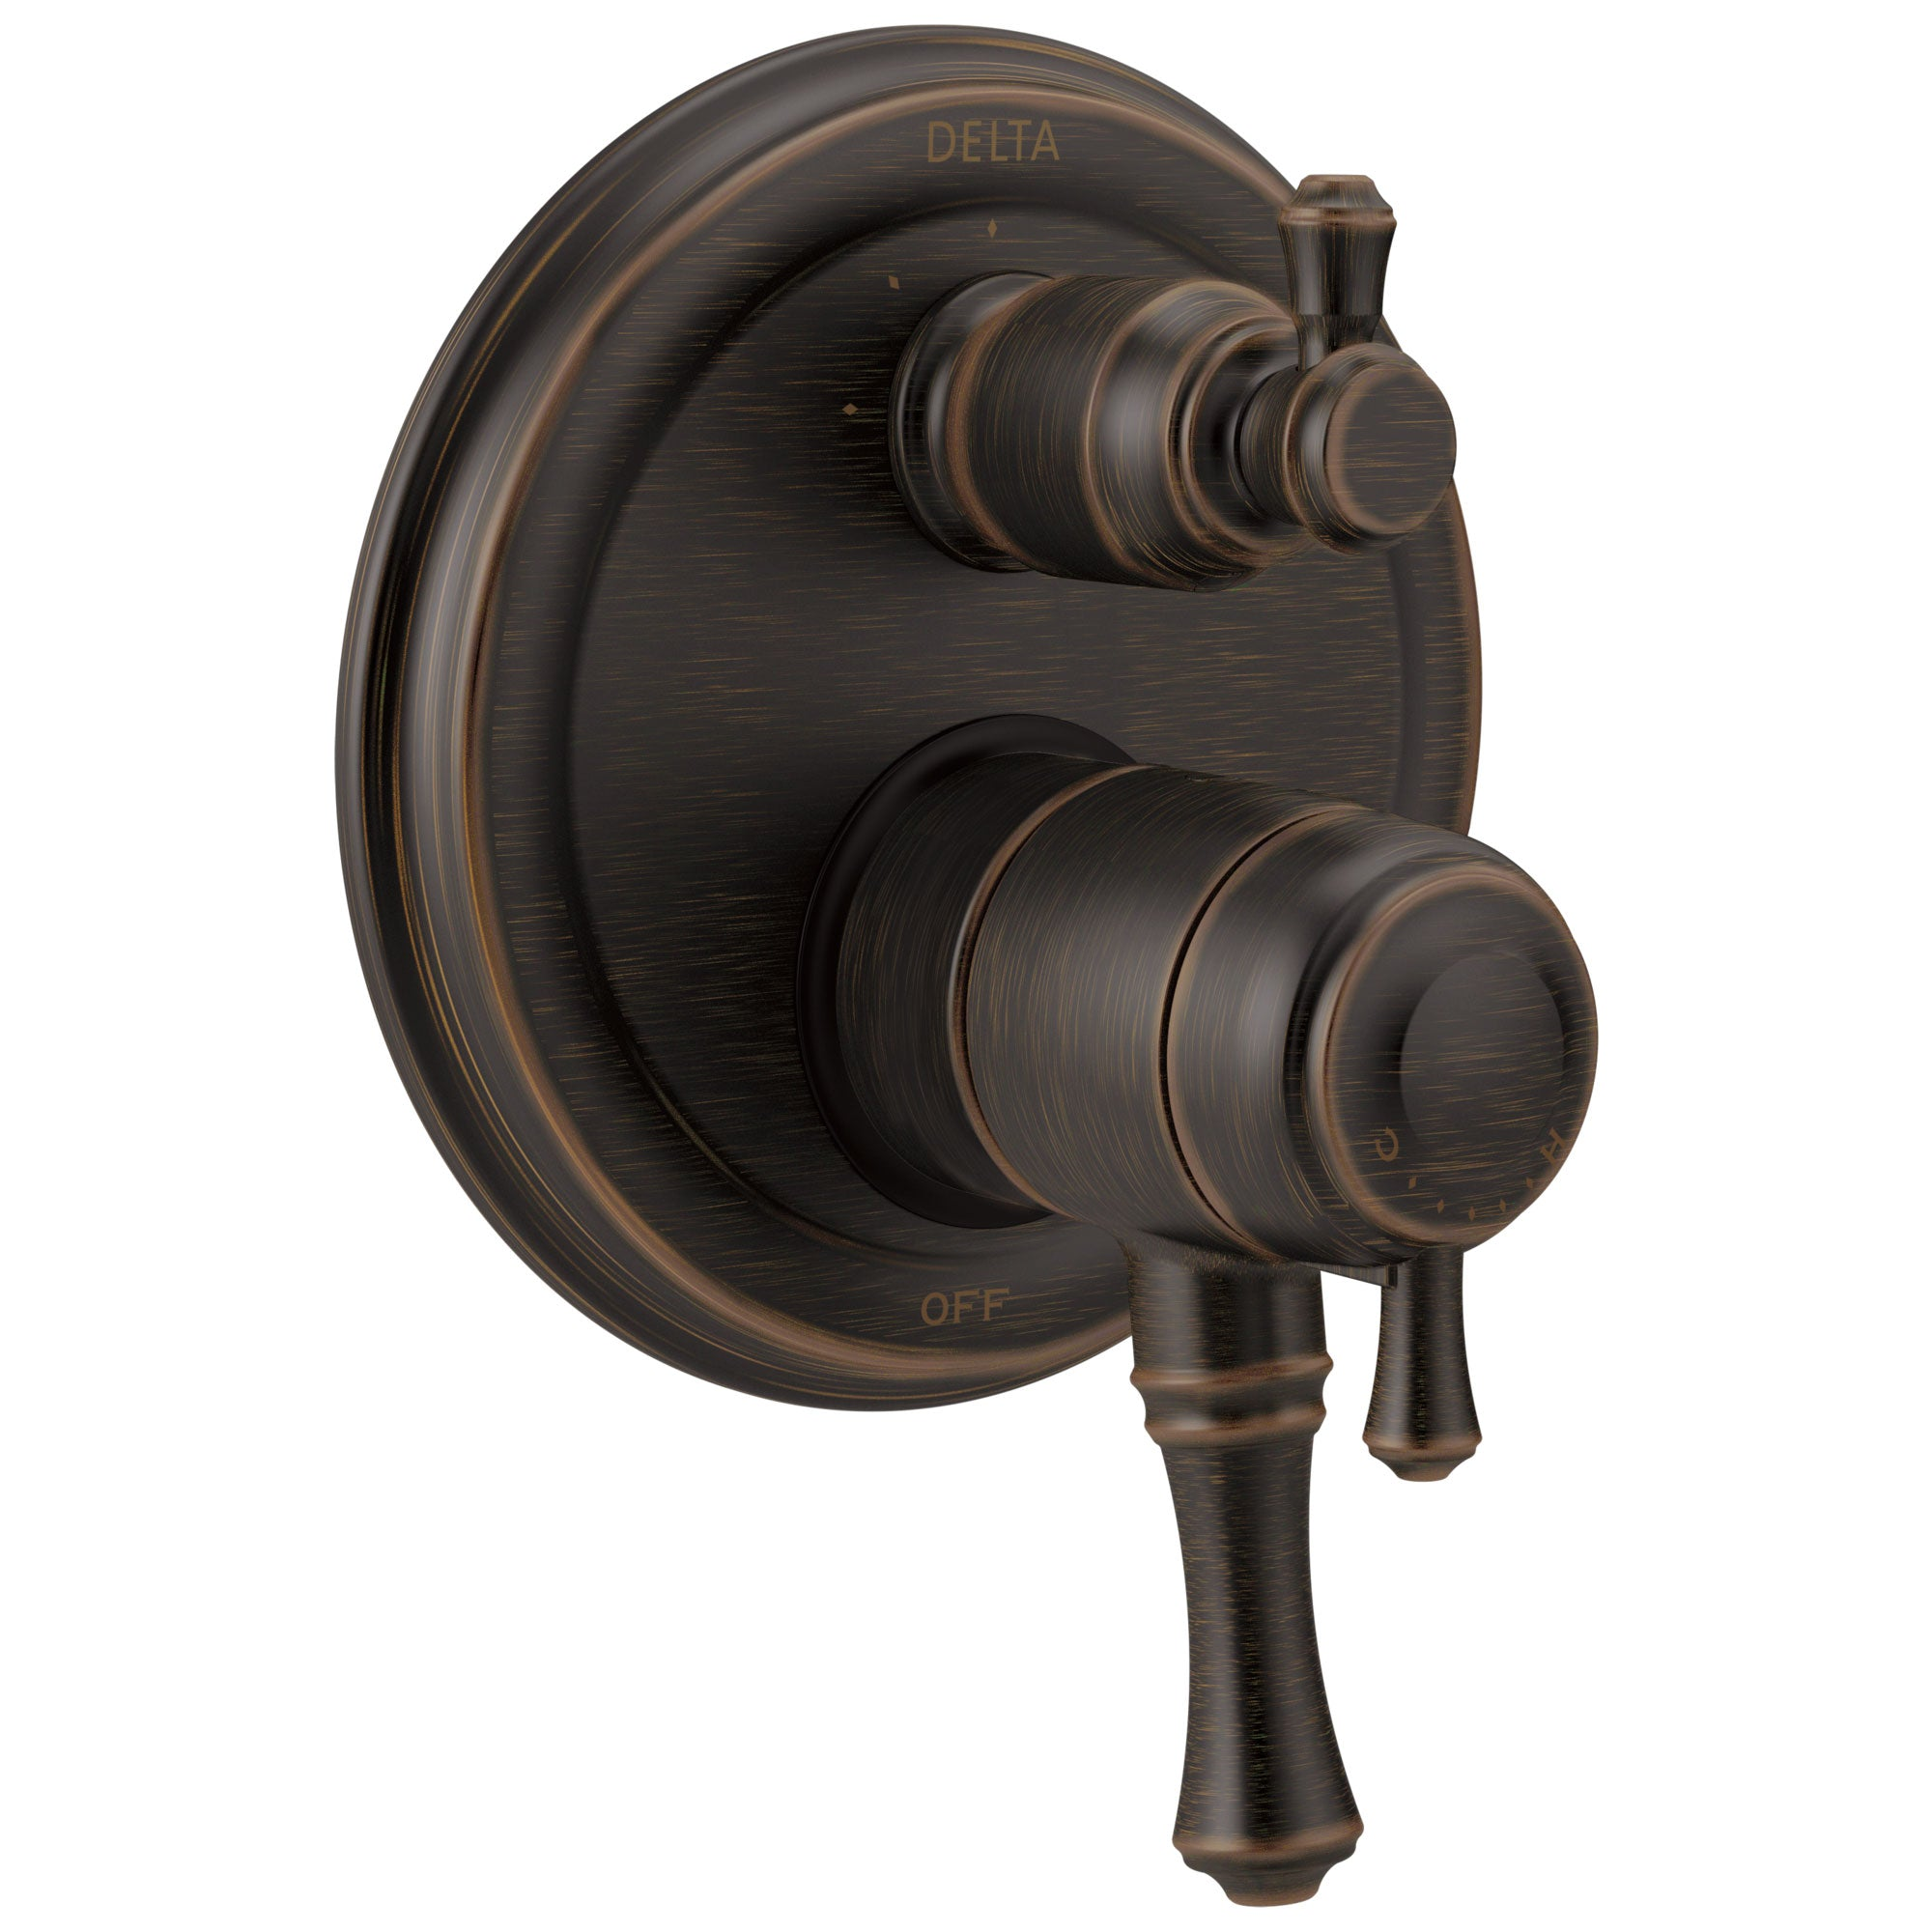 Delta Cassidy Collection Venetian Bronze Traditional Shower Faucet Control Handle with 3-Setting Integrated Diverter Trim (Requires Valve) DT27897RB